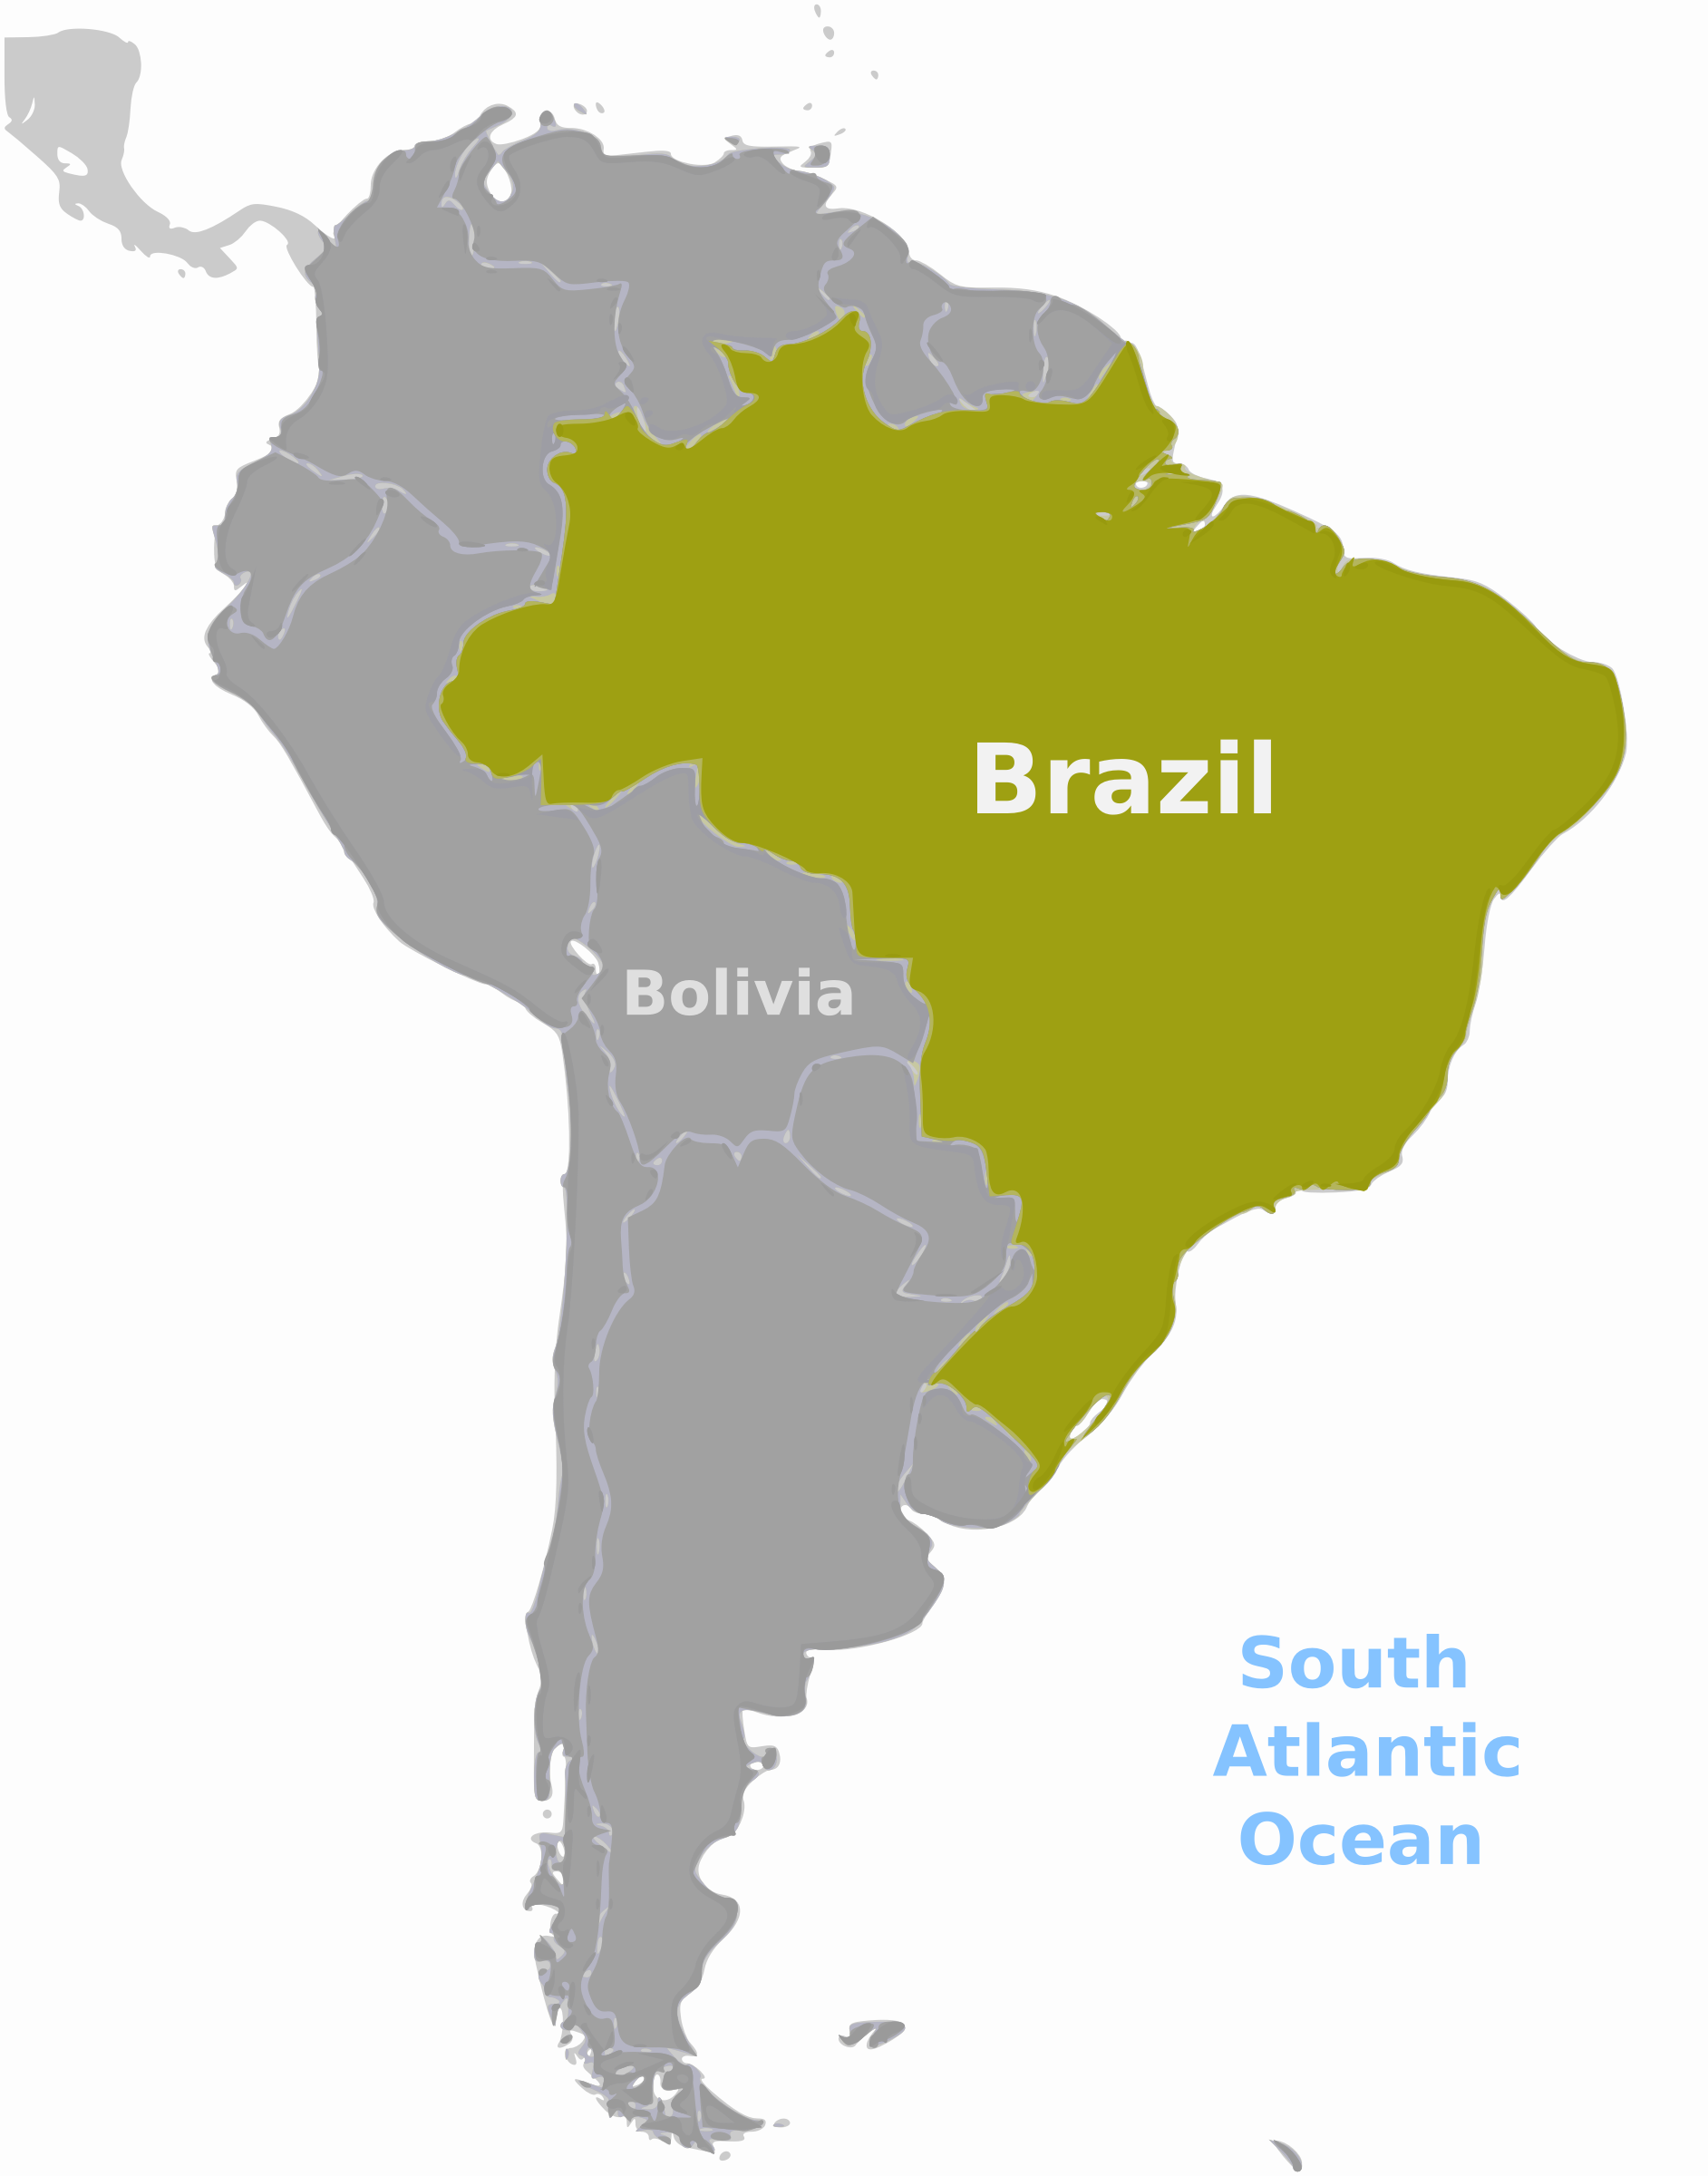 Brazil location label by wpclipart